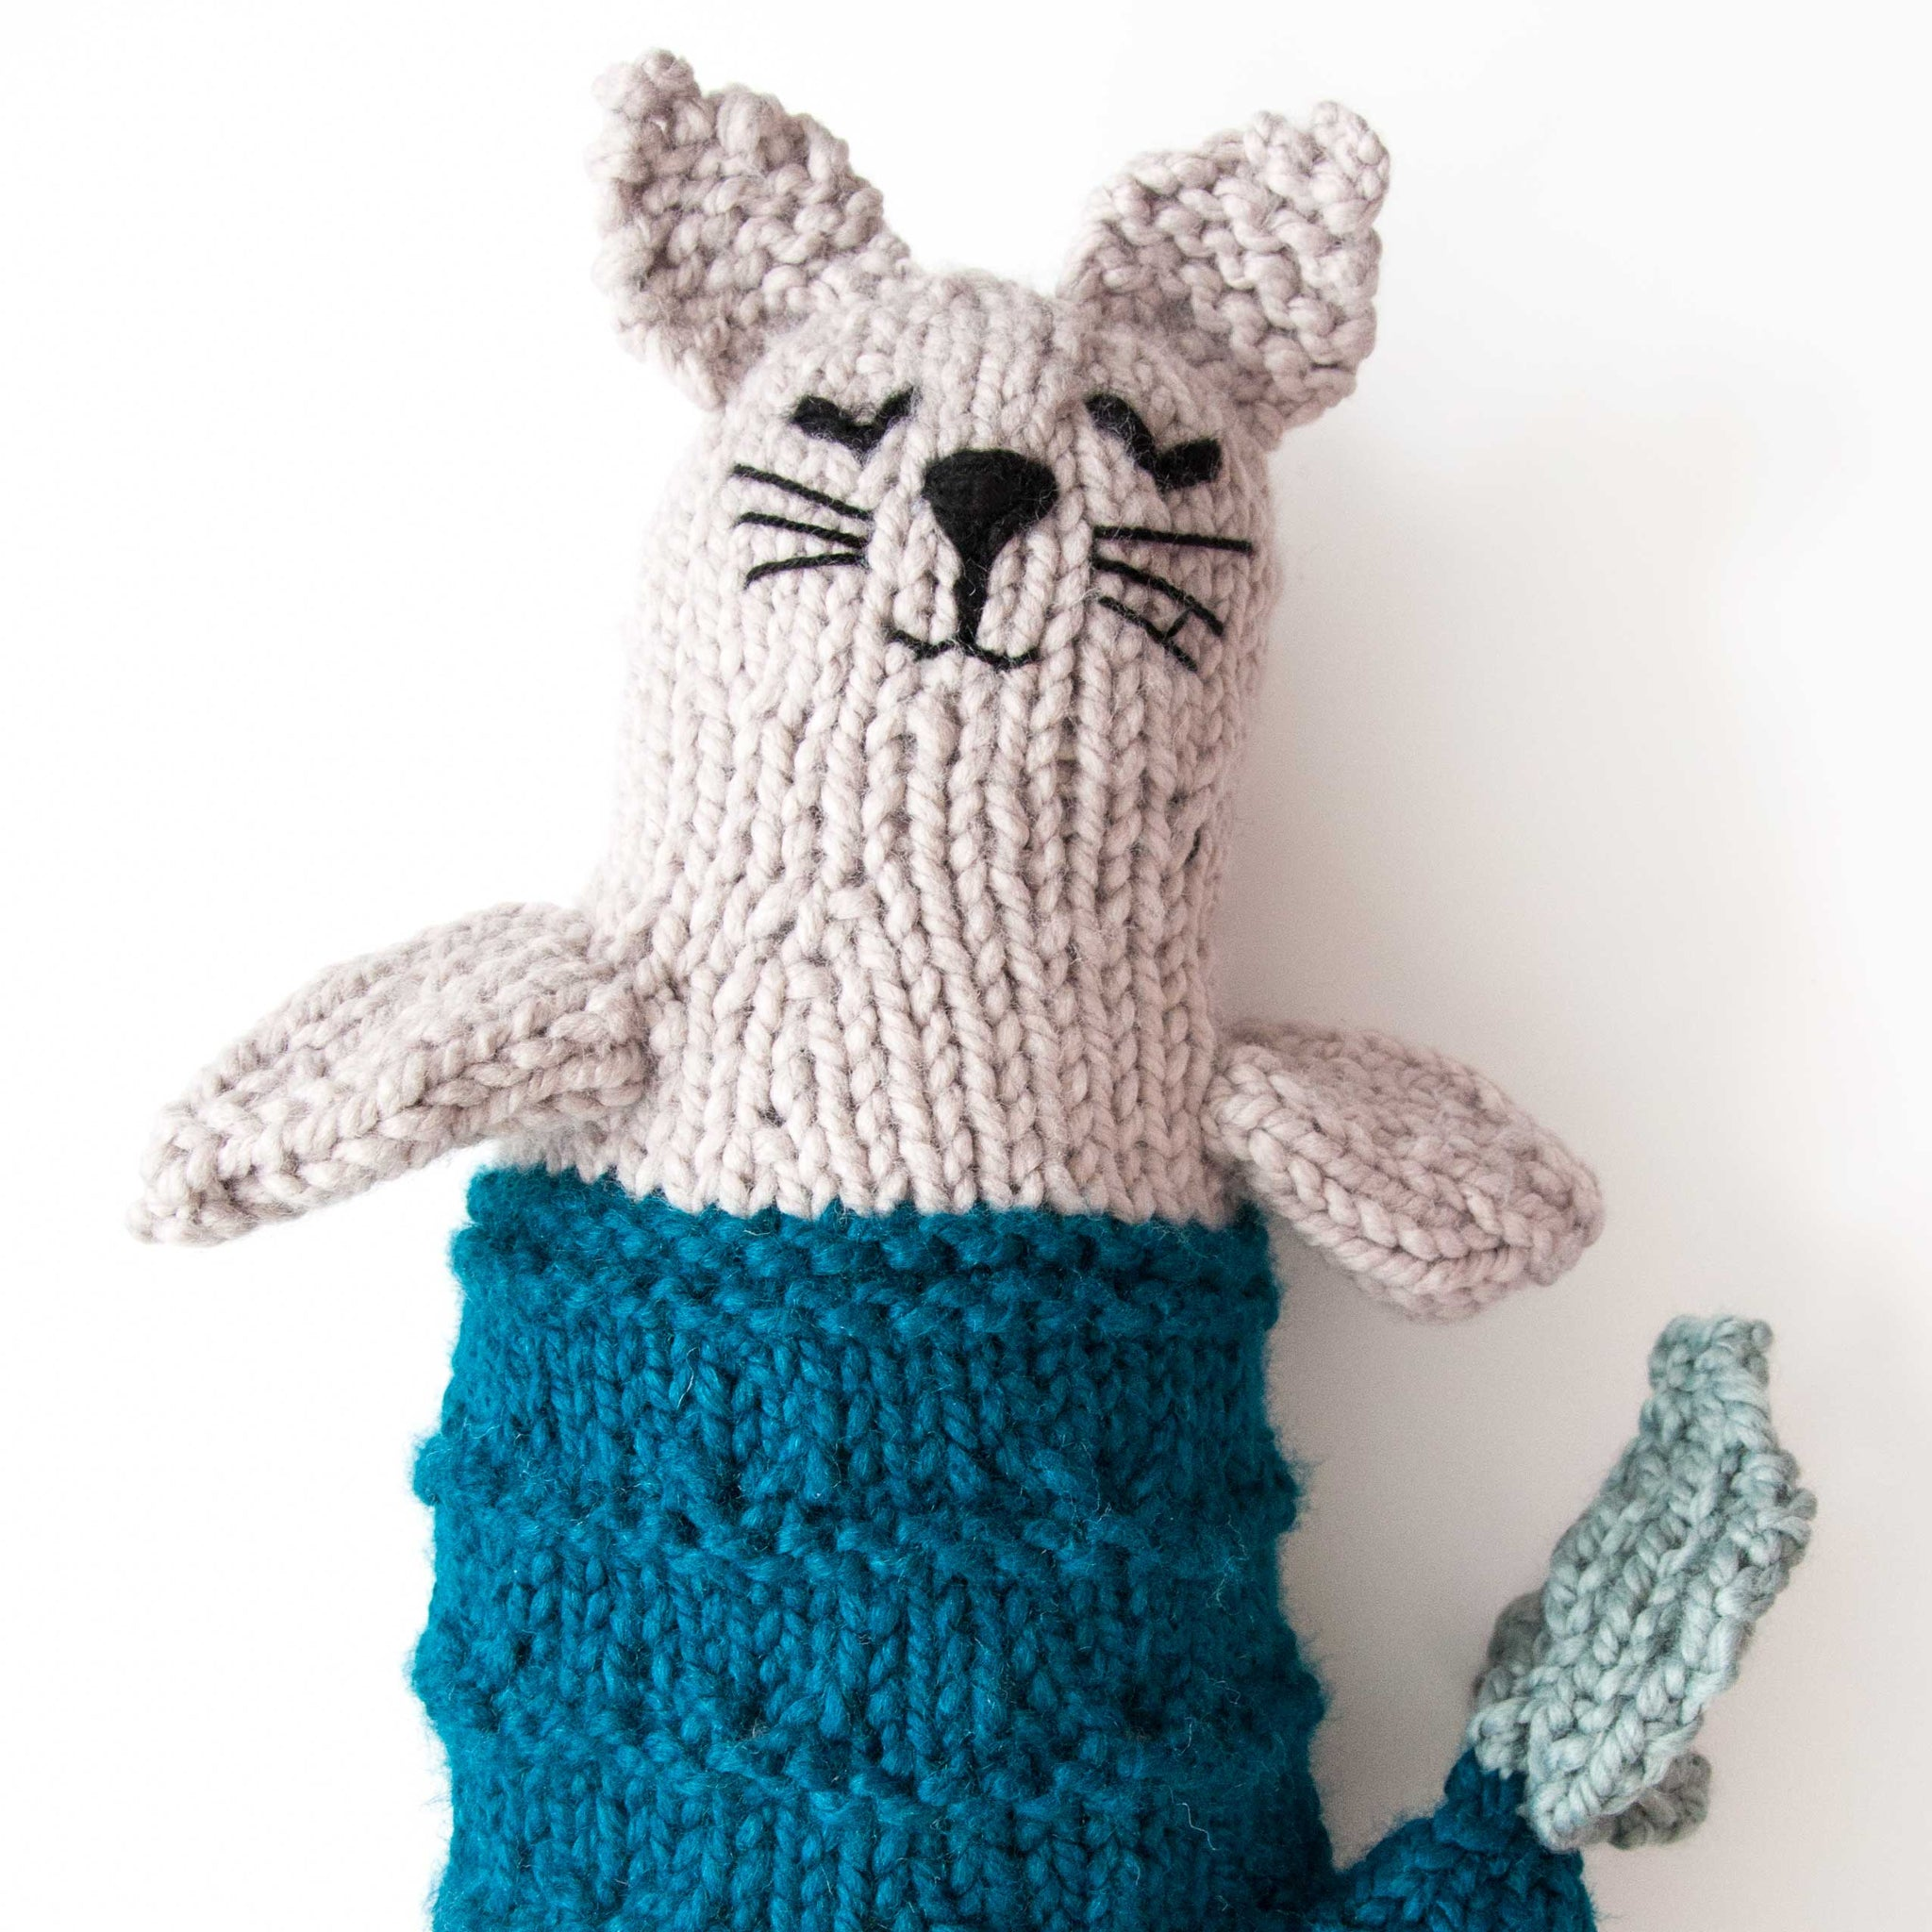 Mermaid Cat Knitting Kit - Mer-cat or Pur-maid (4634923040900)